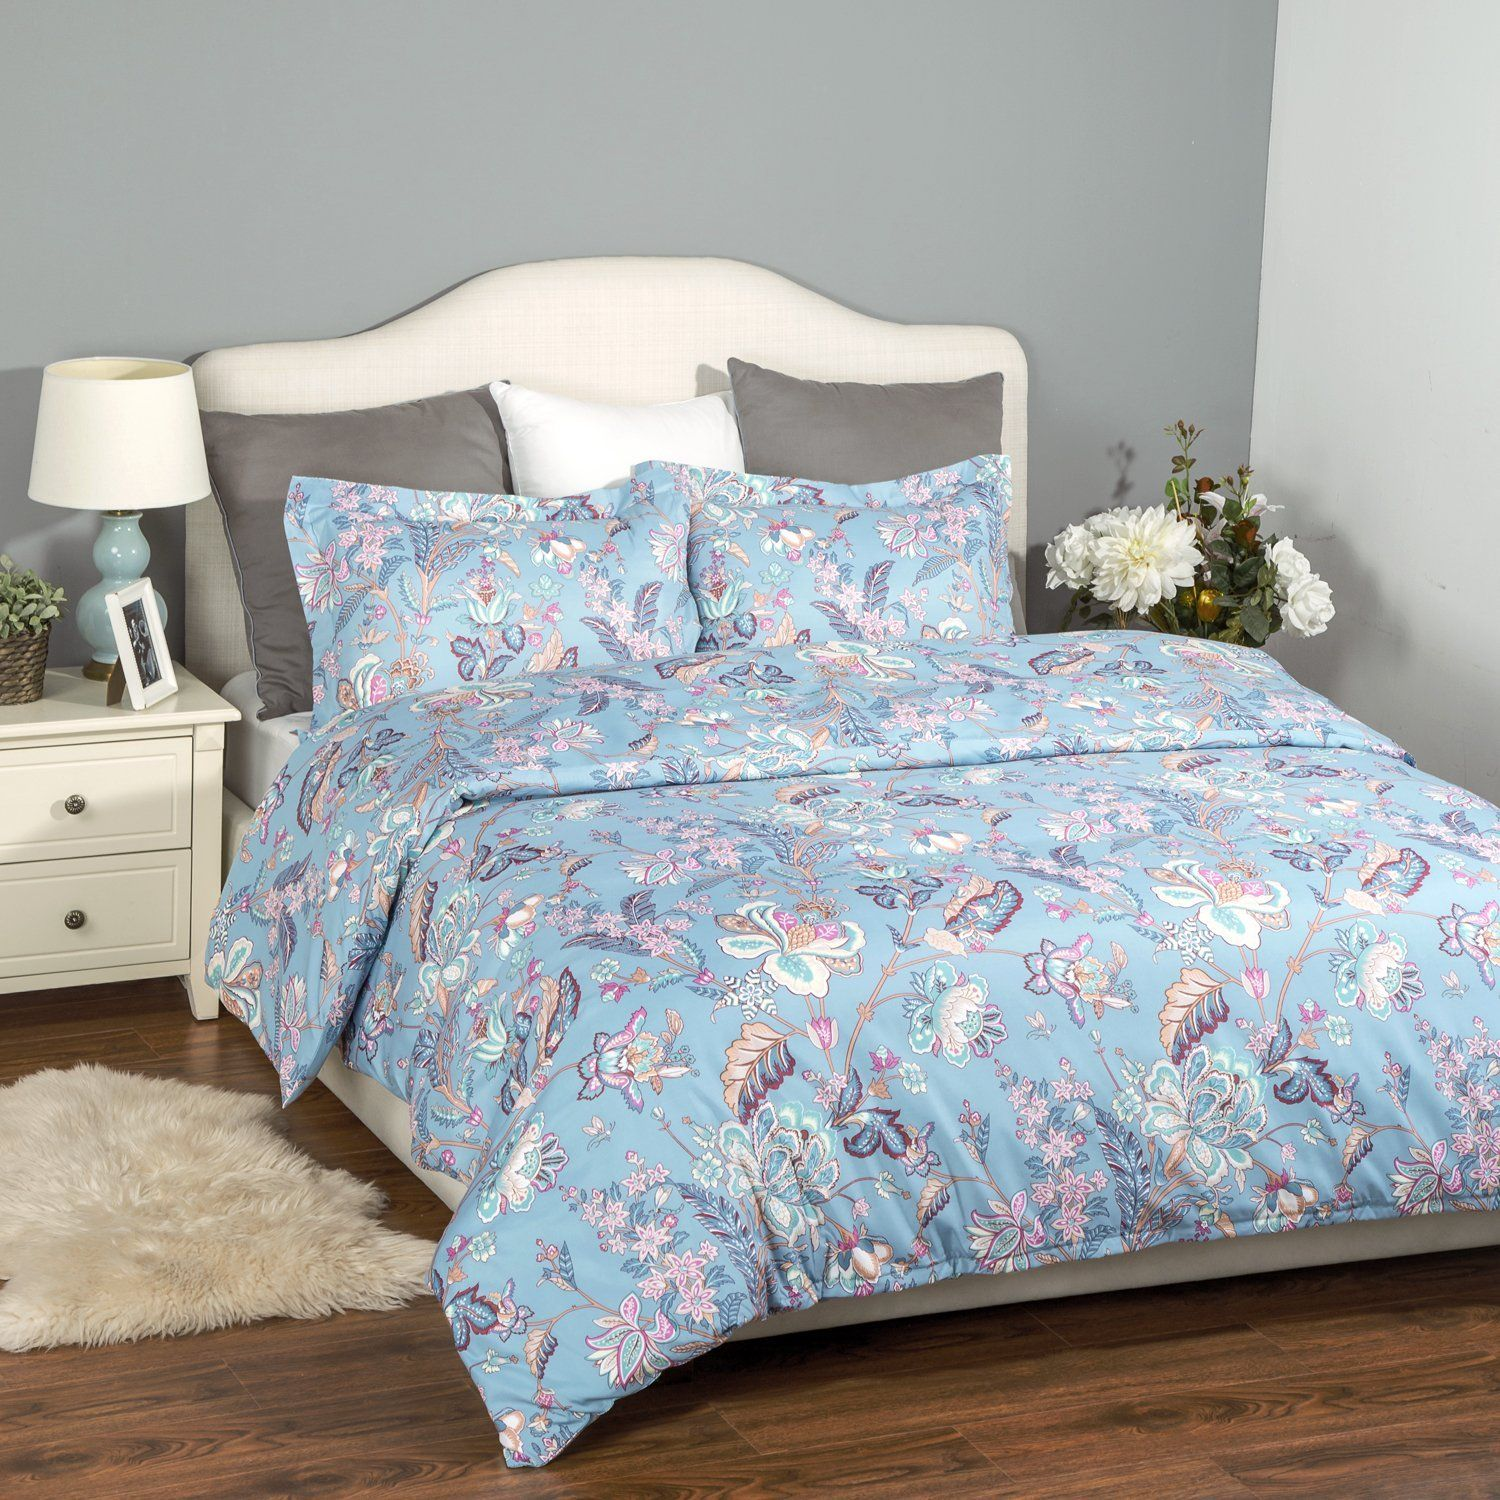 queen pieces full cover covers size duvet zipper with king closure